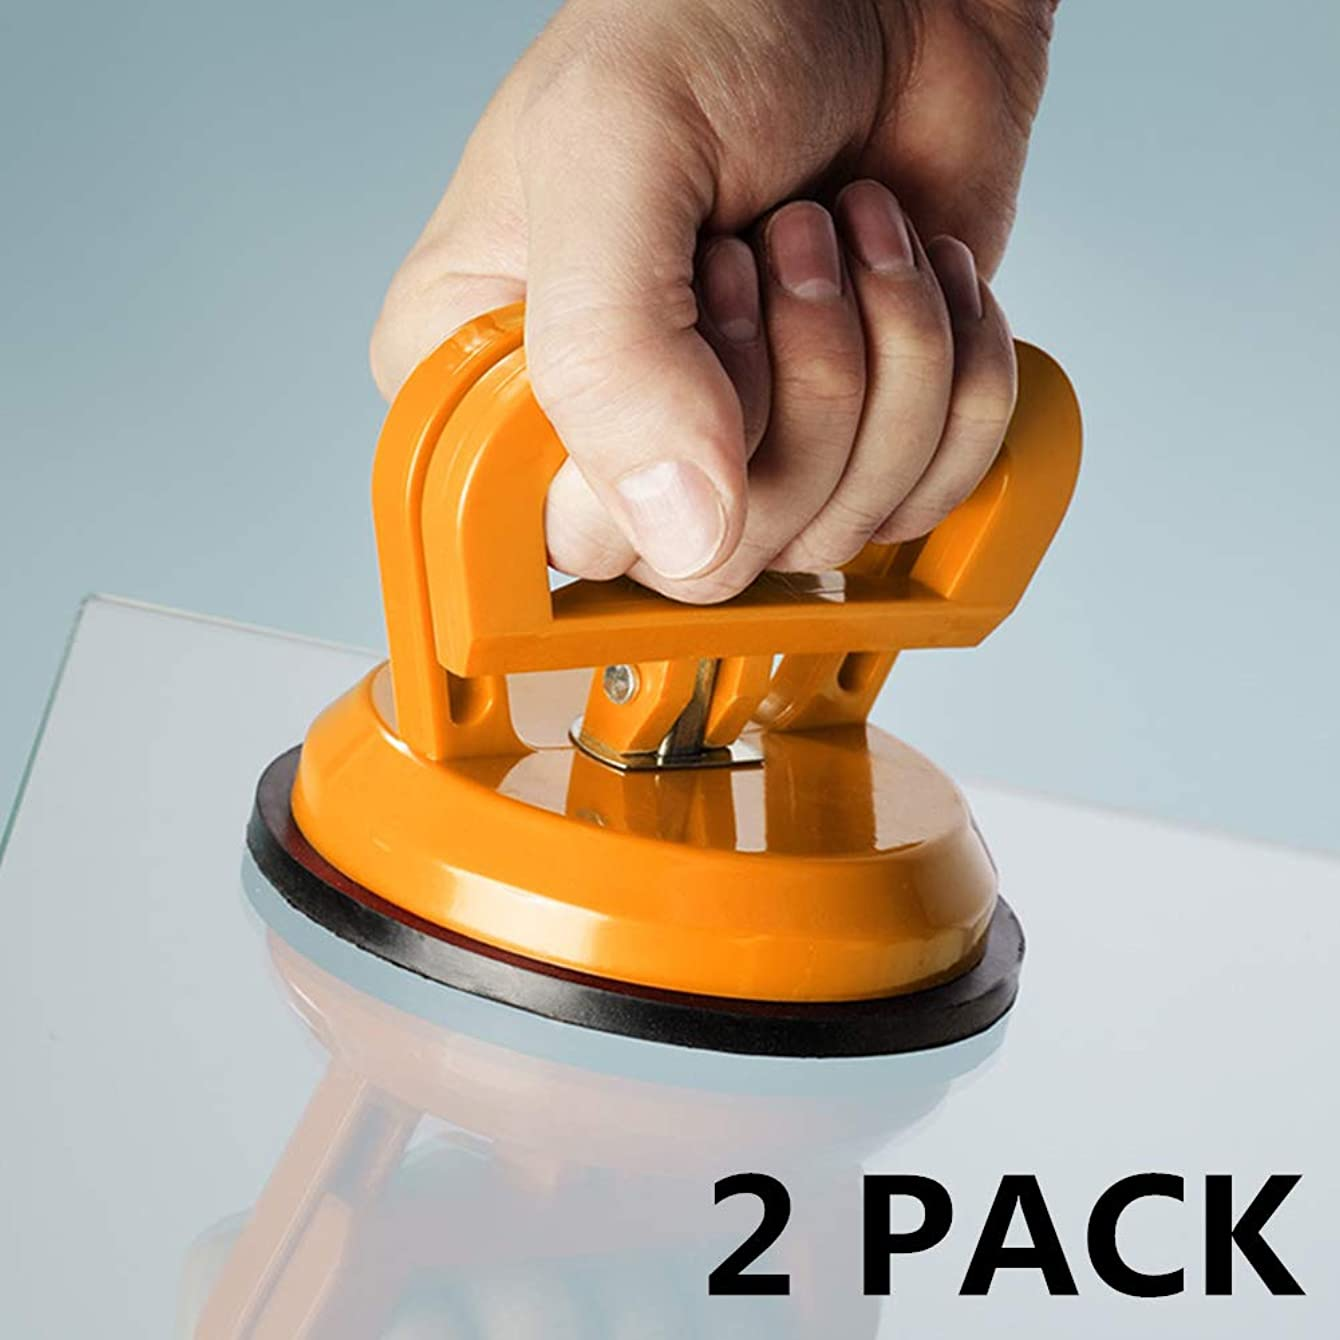 2 PACK Vacuum Suction Cup Glass Lifter 5